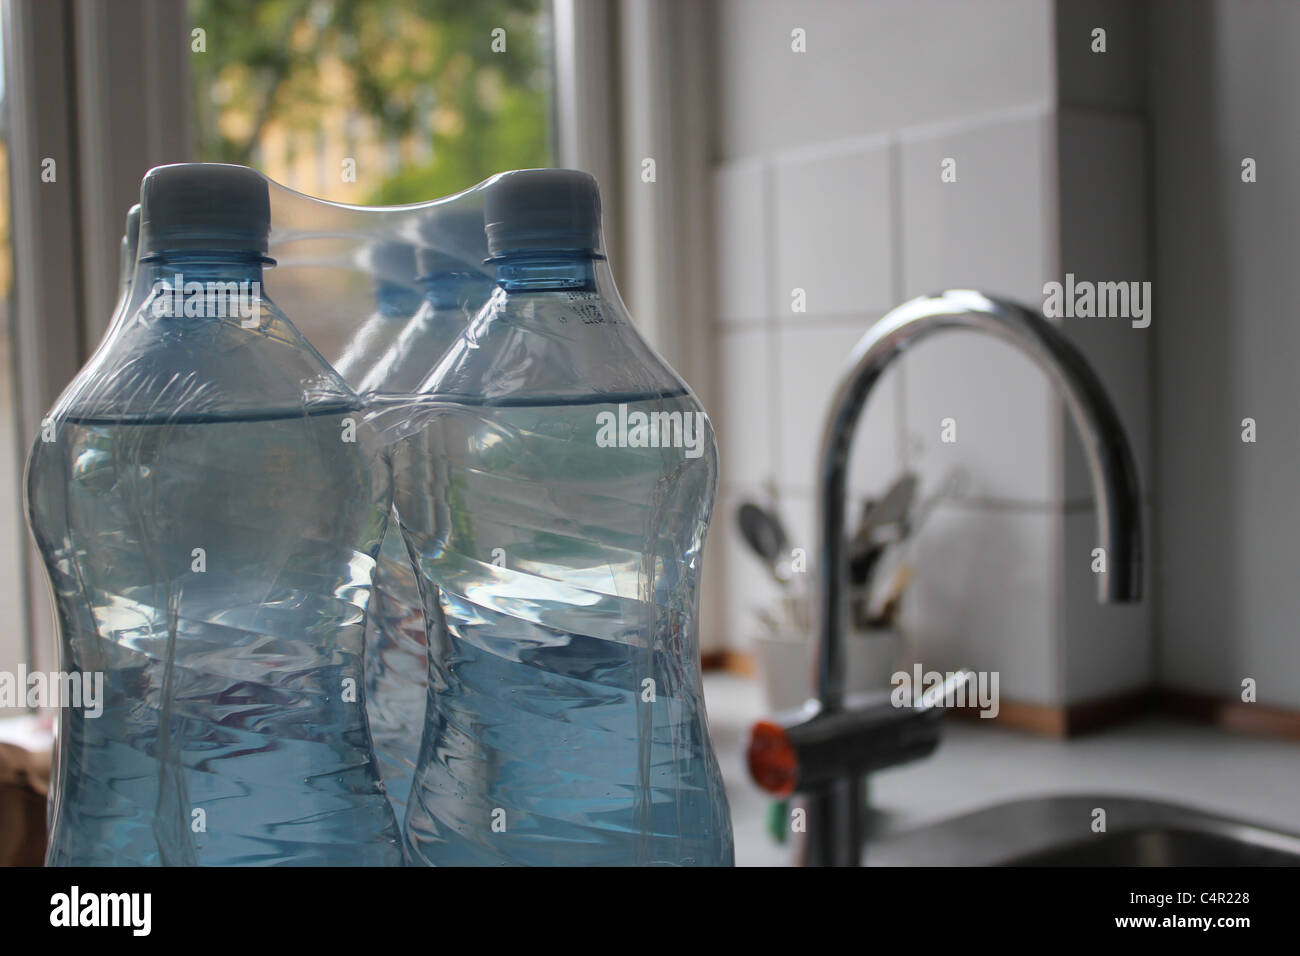 Bottled water or tap water? - Stock Image